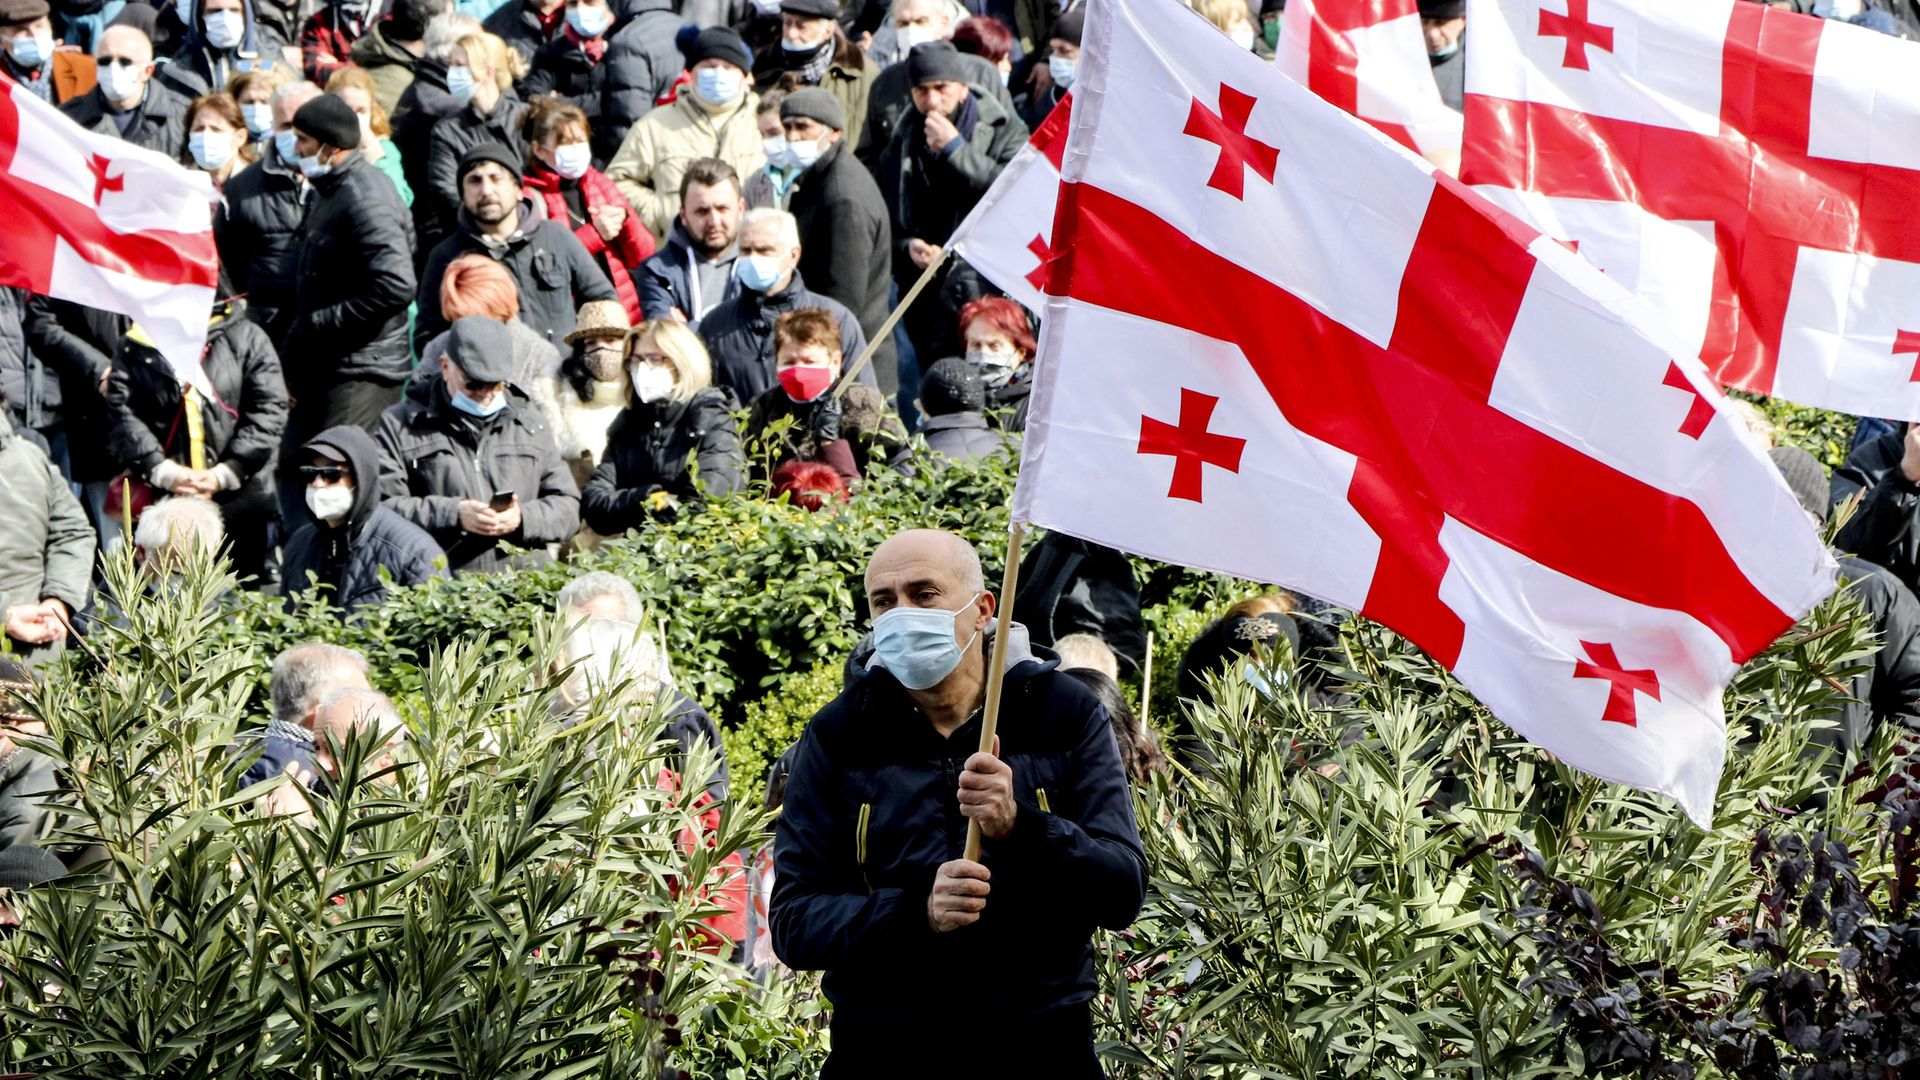 Supporters of United National Movement and the leaders of other opposition parties march to protest against detention of Nika Melia, the head of the main opposition United National Movement, in Tbilisi, Georgia - Credit: Anadolu Agency via Getty Images